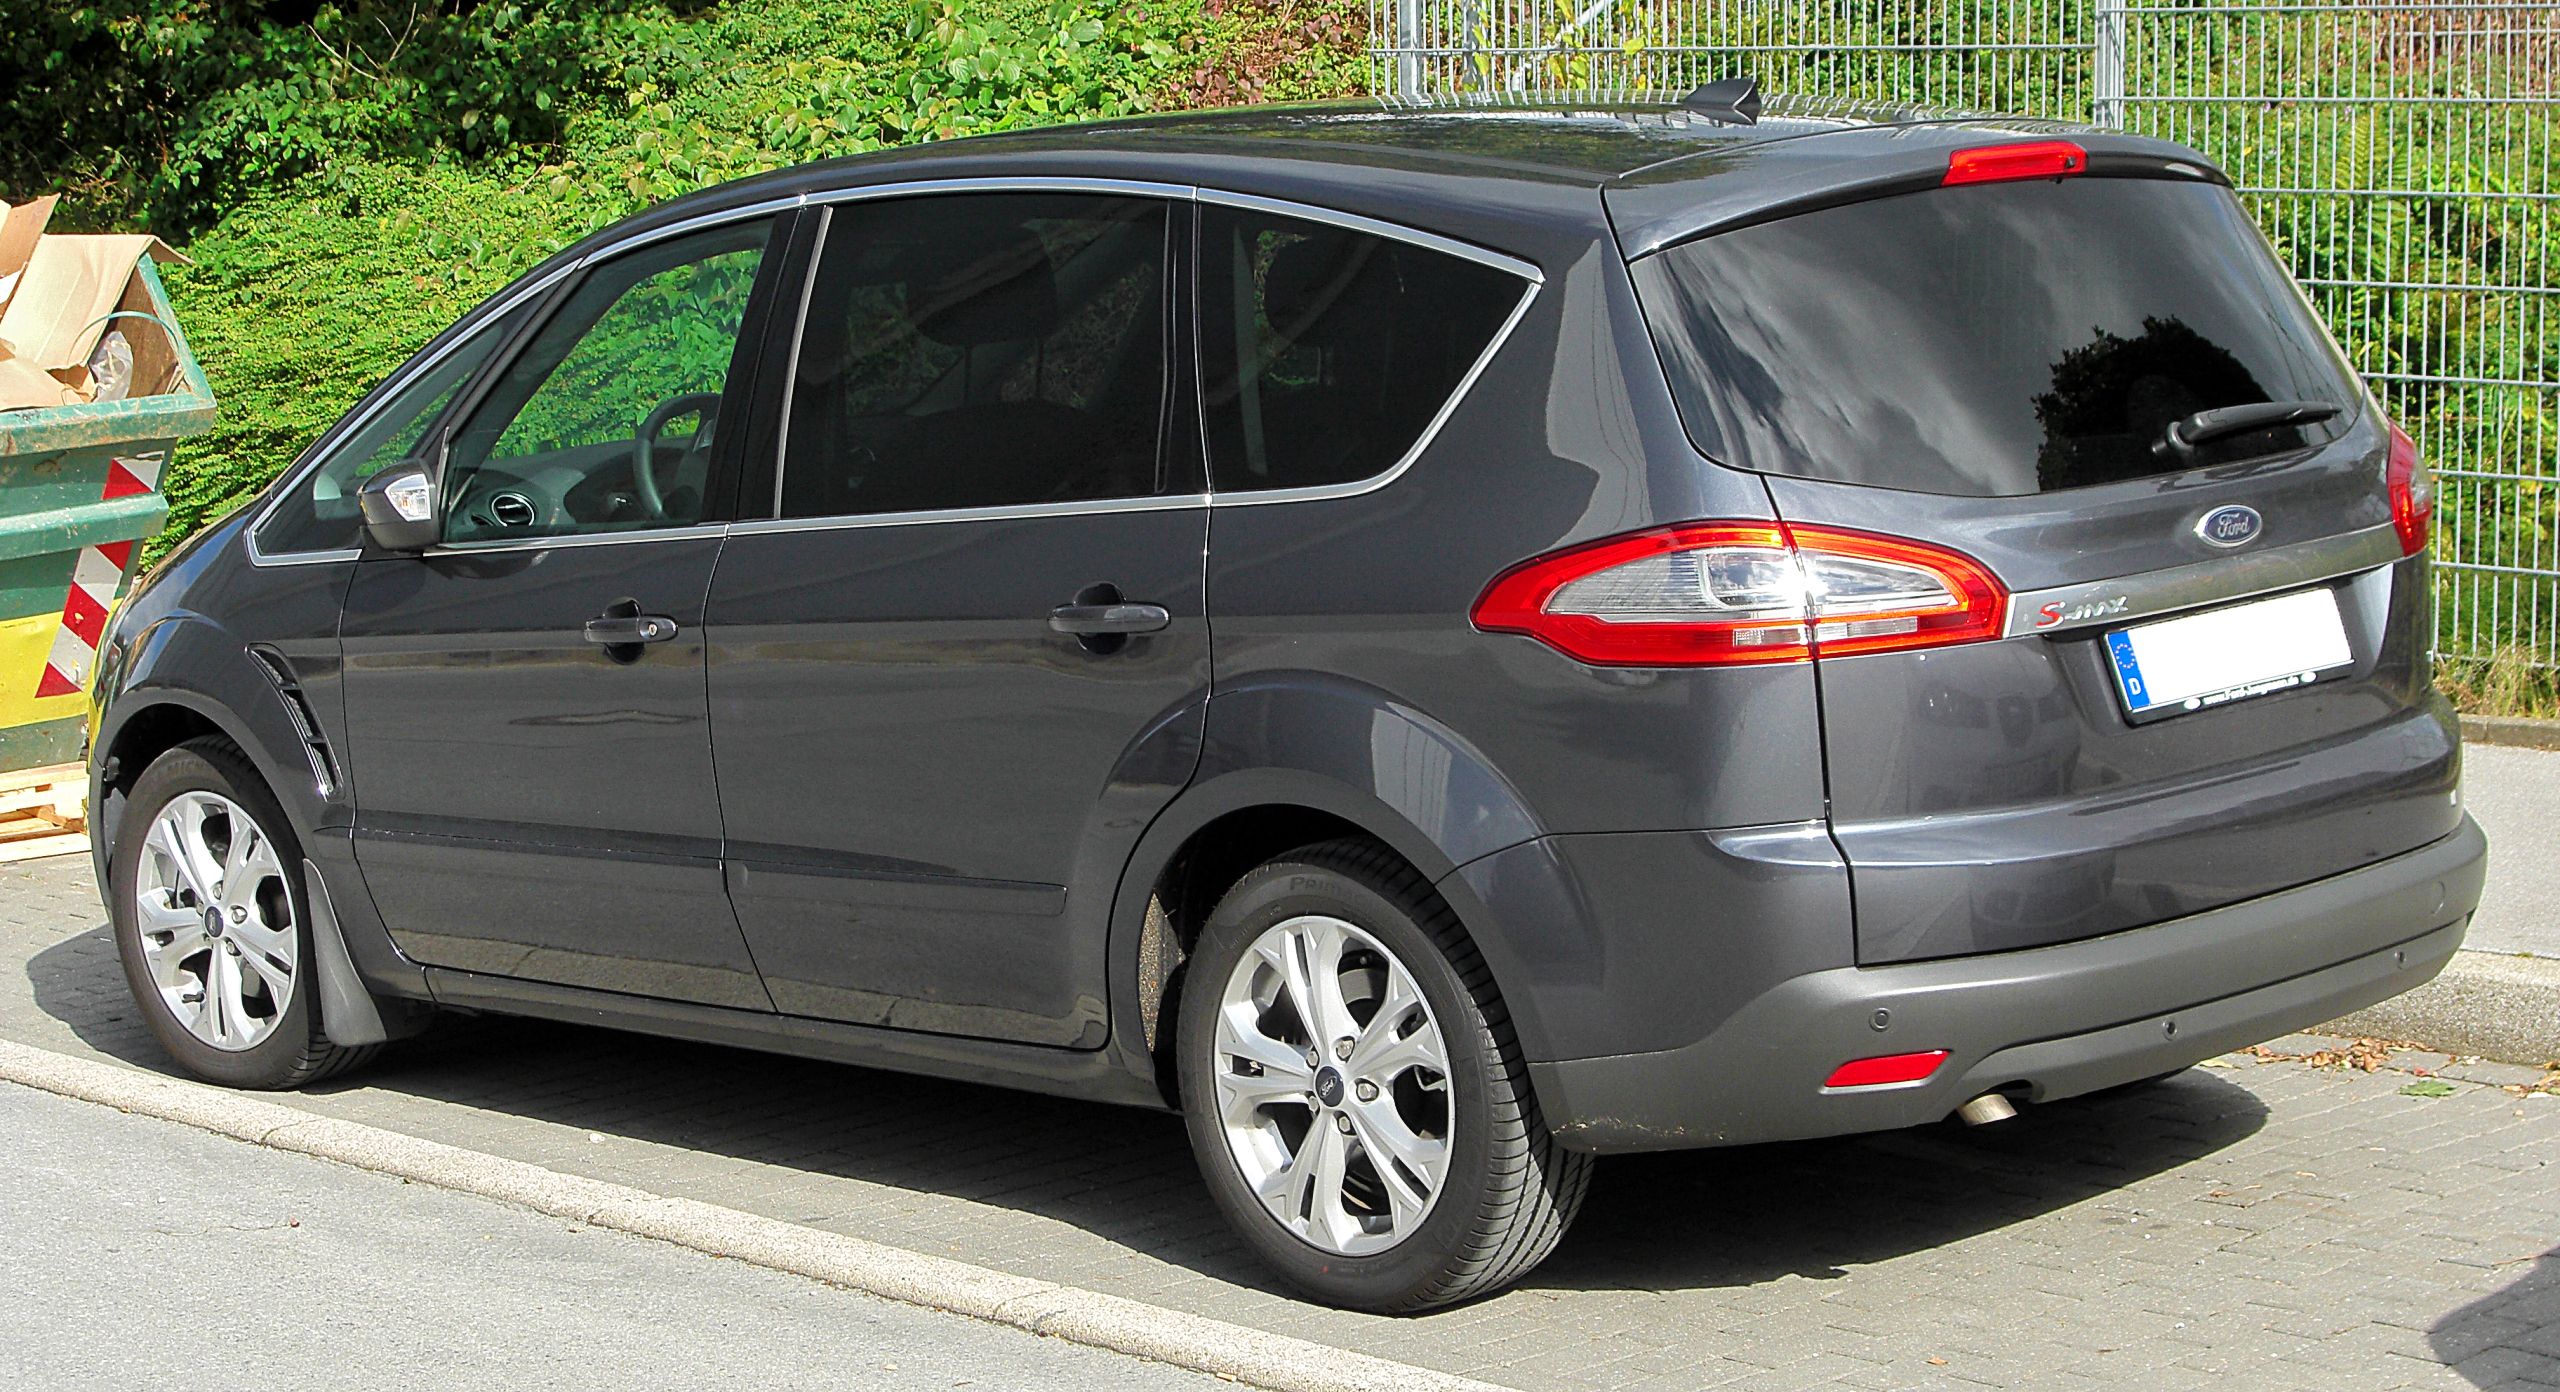 file ford s max facelift rear 1 wikimedia commons. Black Bedroom Furniture Sets. Home Design Ideas